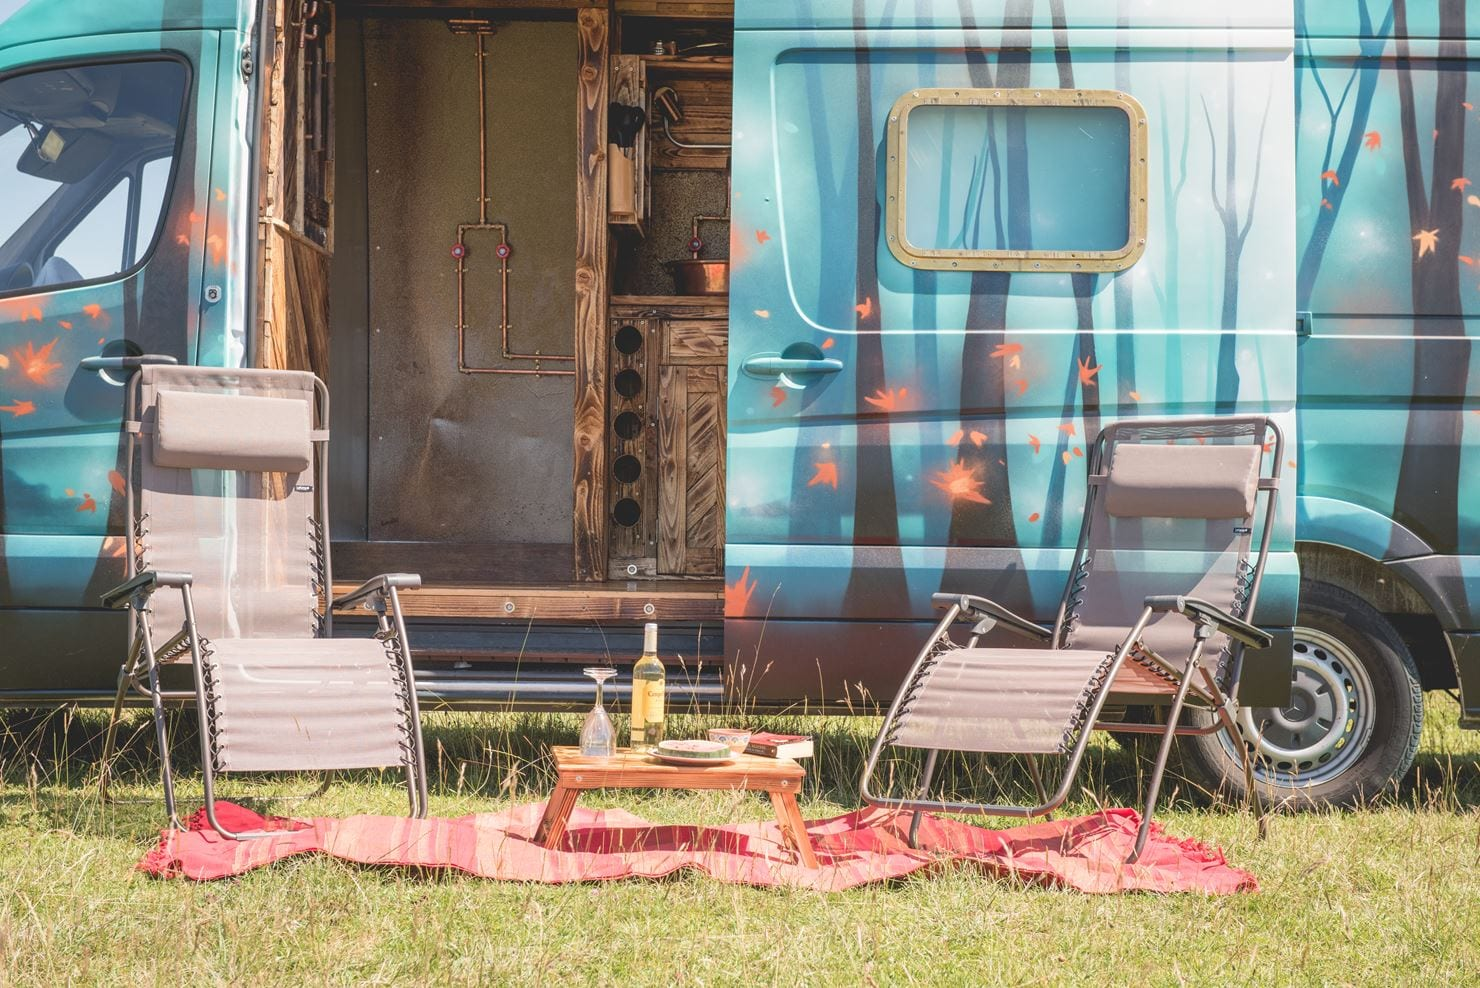 The outside of a campervan with two picnic chairs, wine and a picnic blanket